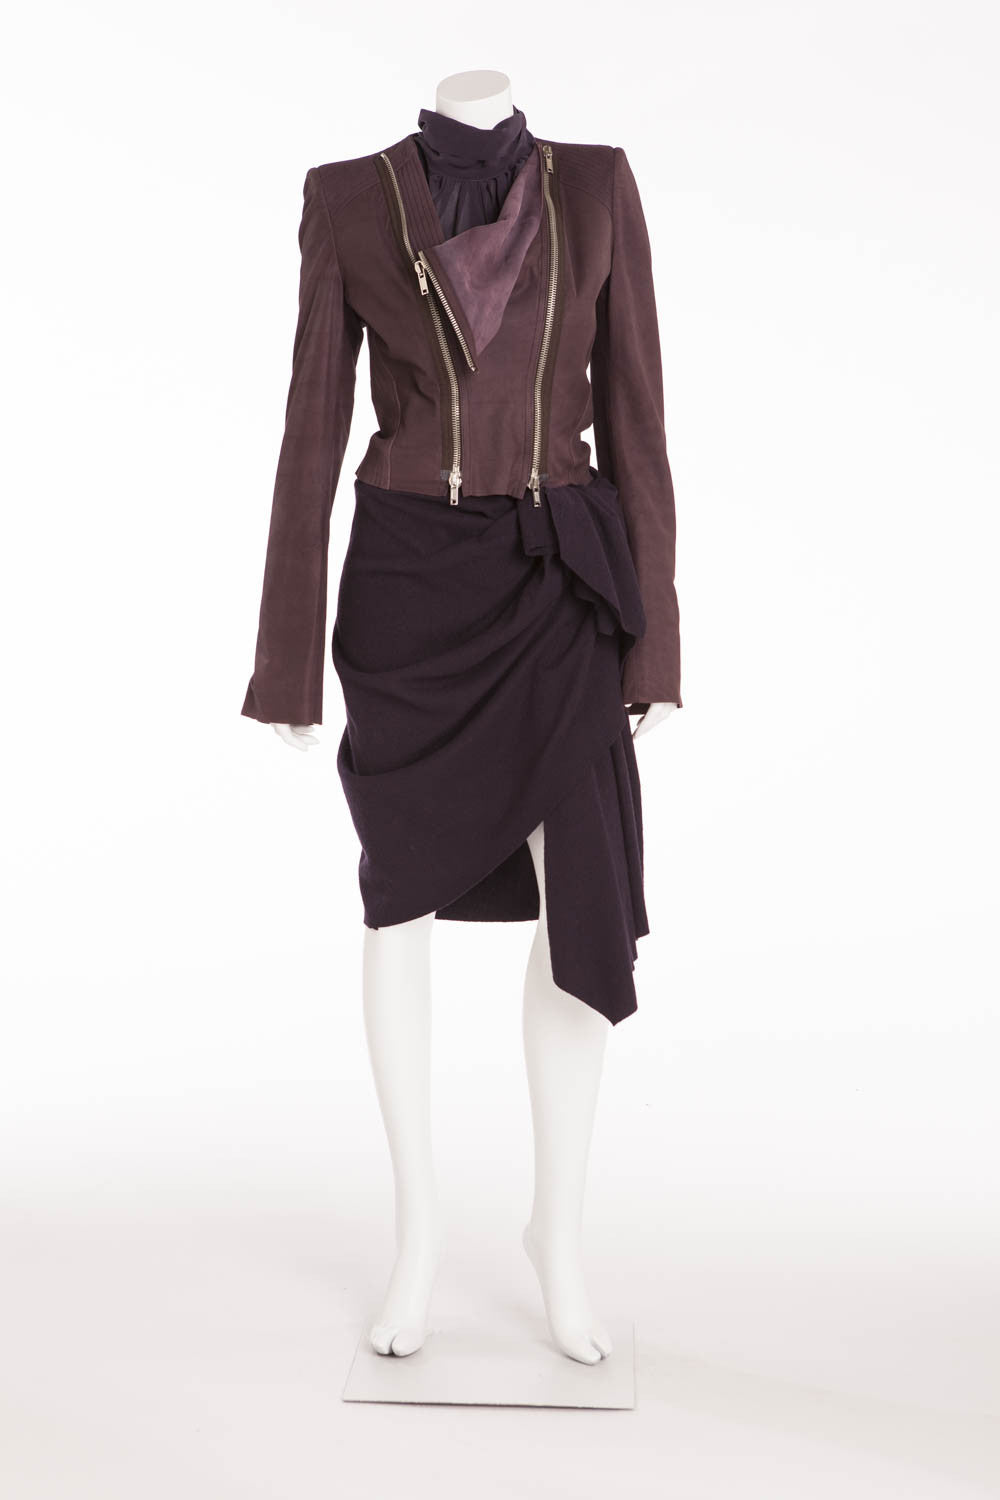 Haider Ackermann - Purple 3pc Blouse, Skirt and Jacket - IT 42